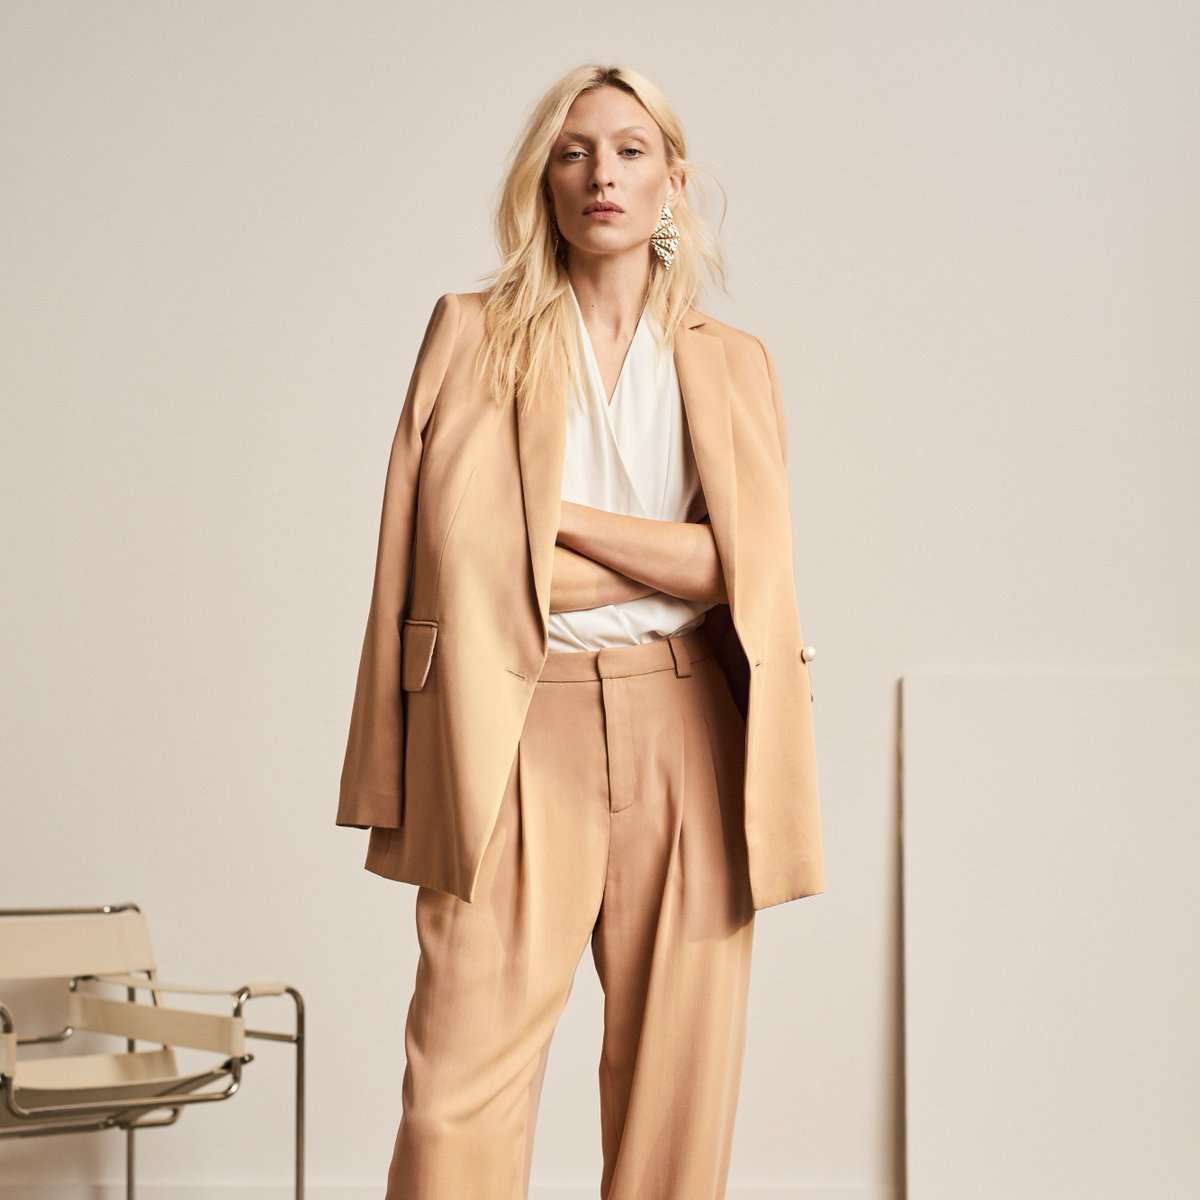 Jlandpartners On Twitter We Are Excited To Announce The Launch Of John Lewis Partners Mother Of Pearl An Exclusive Sustainable Collection For Spring 2020 Read More About The Collaboration Here